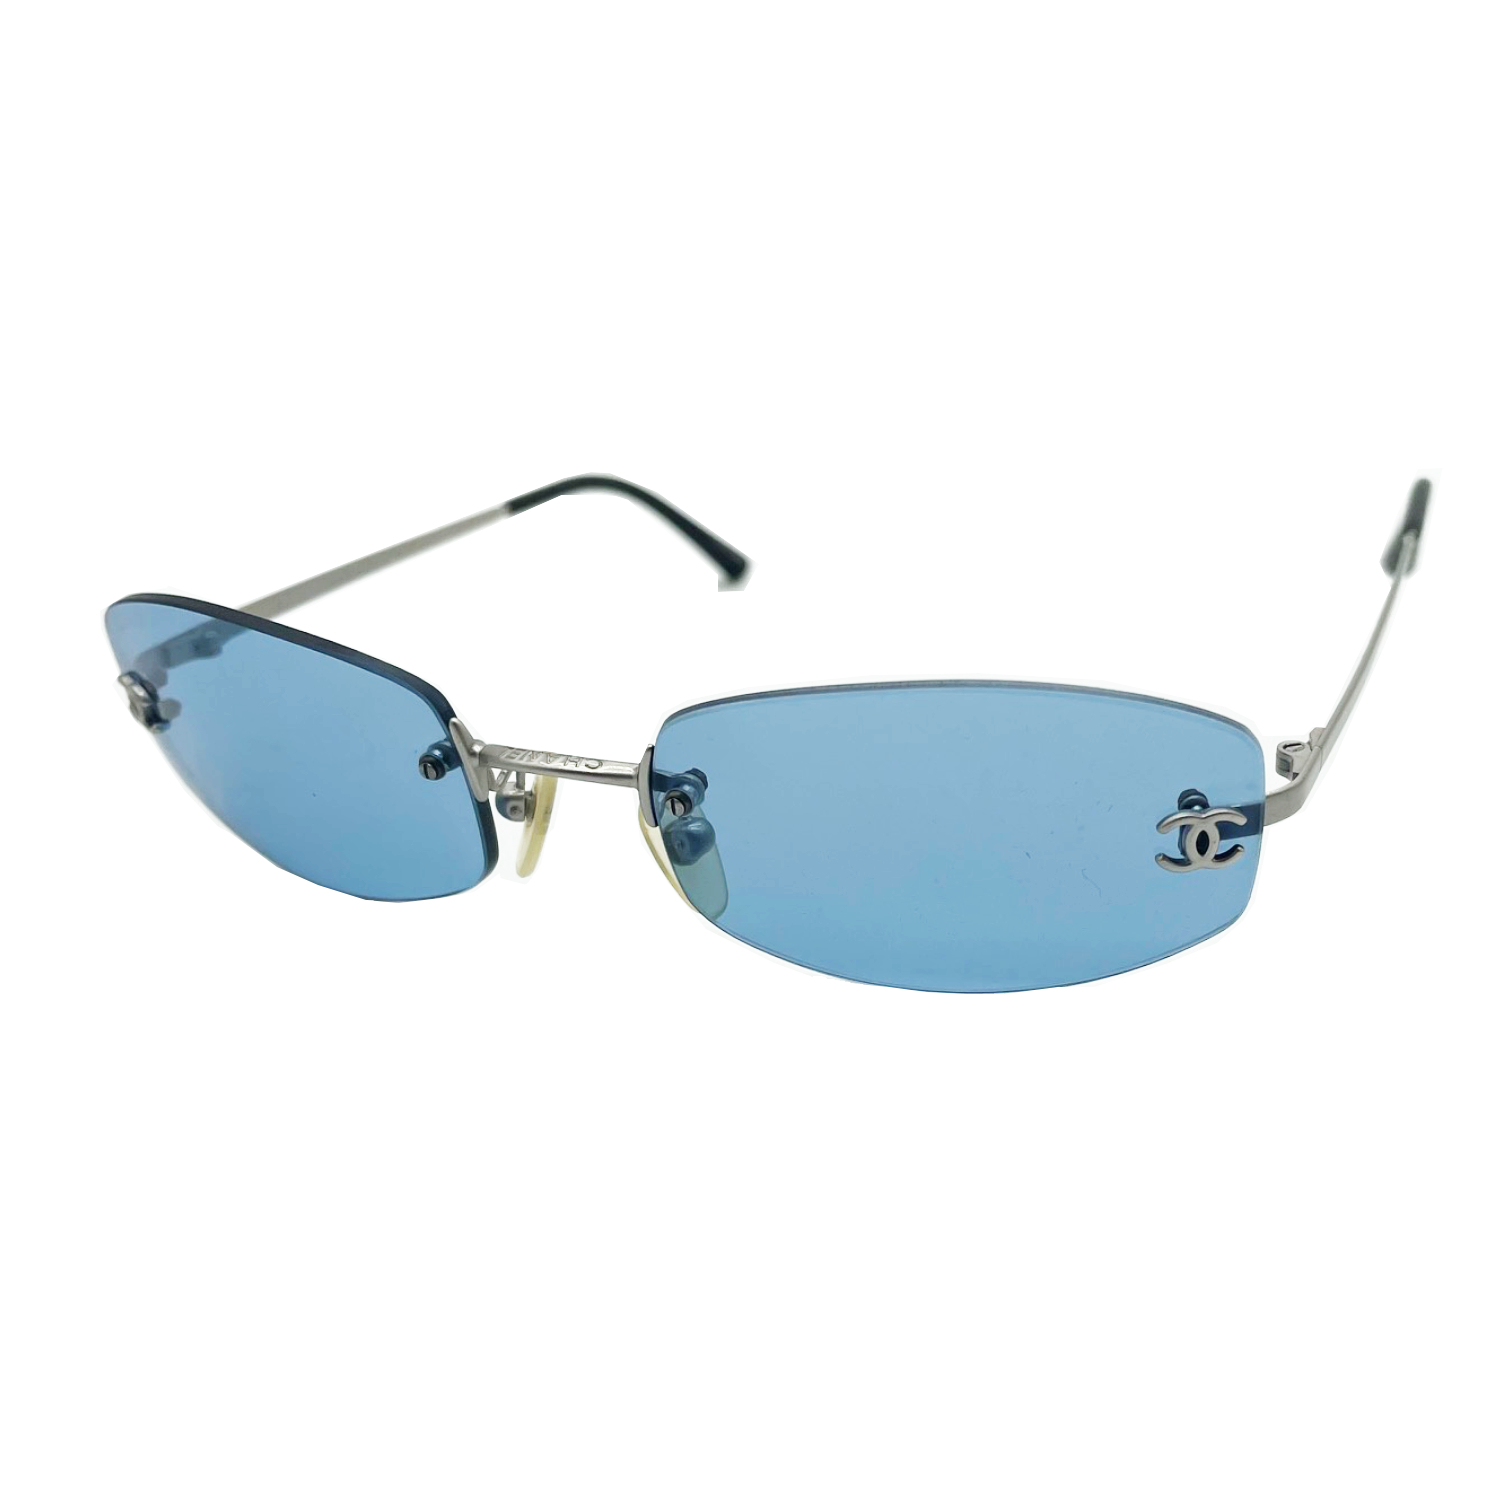 Vintage Chanel Rimless Tinted Sunglasses in Blue | NITRYL